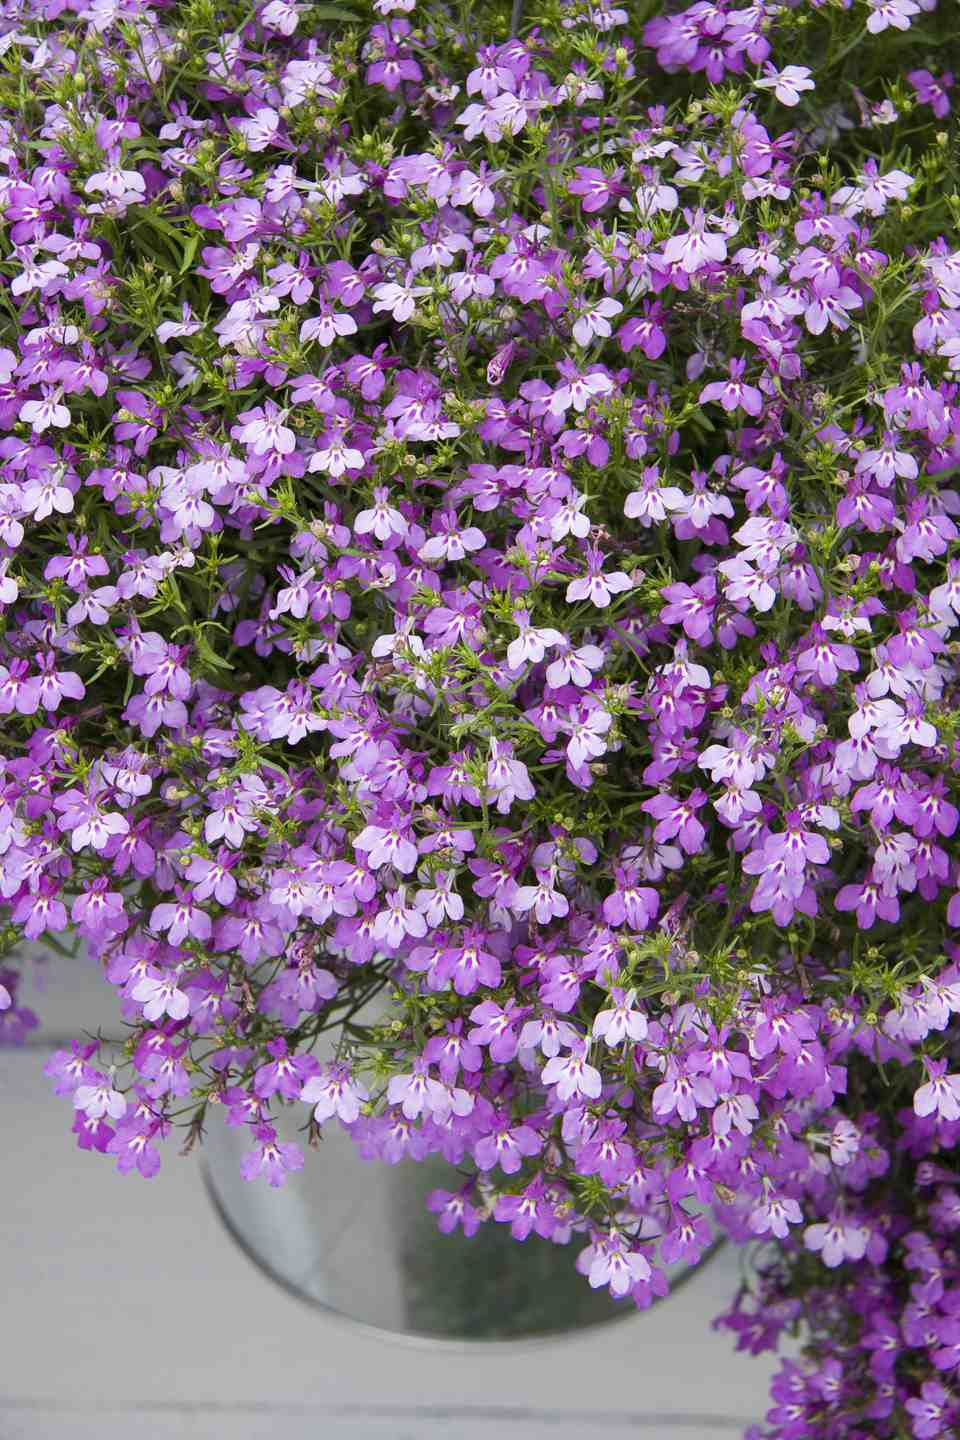 Pictures of purple flowers picture of annual purple lobelia flowers izmirmasajfo Image collections